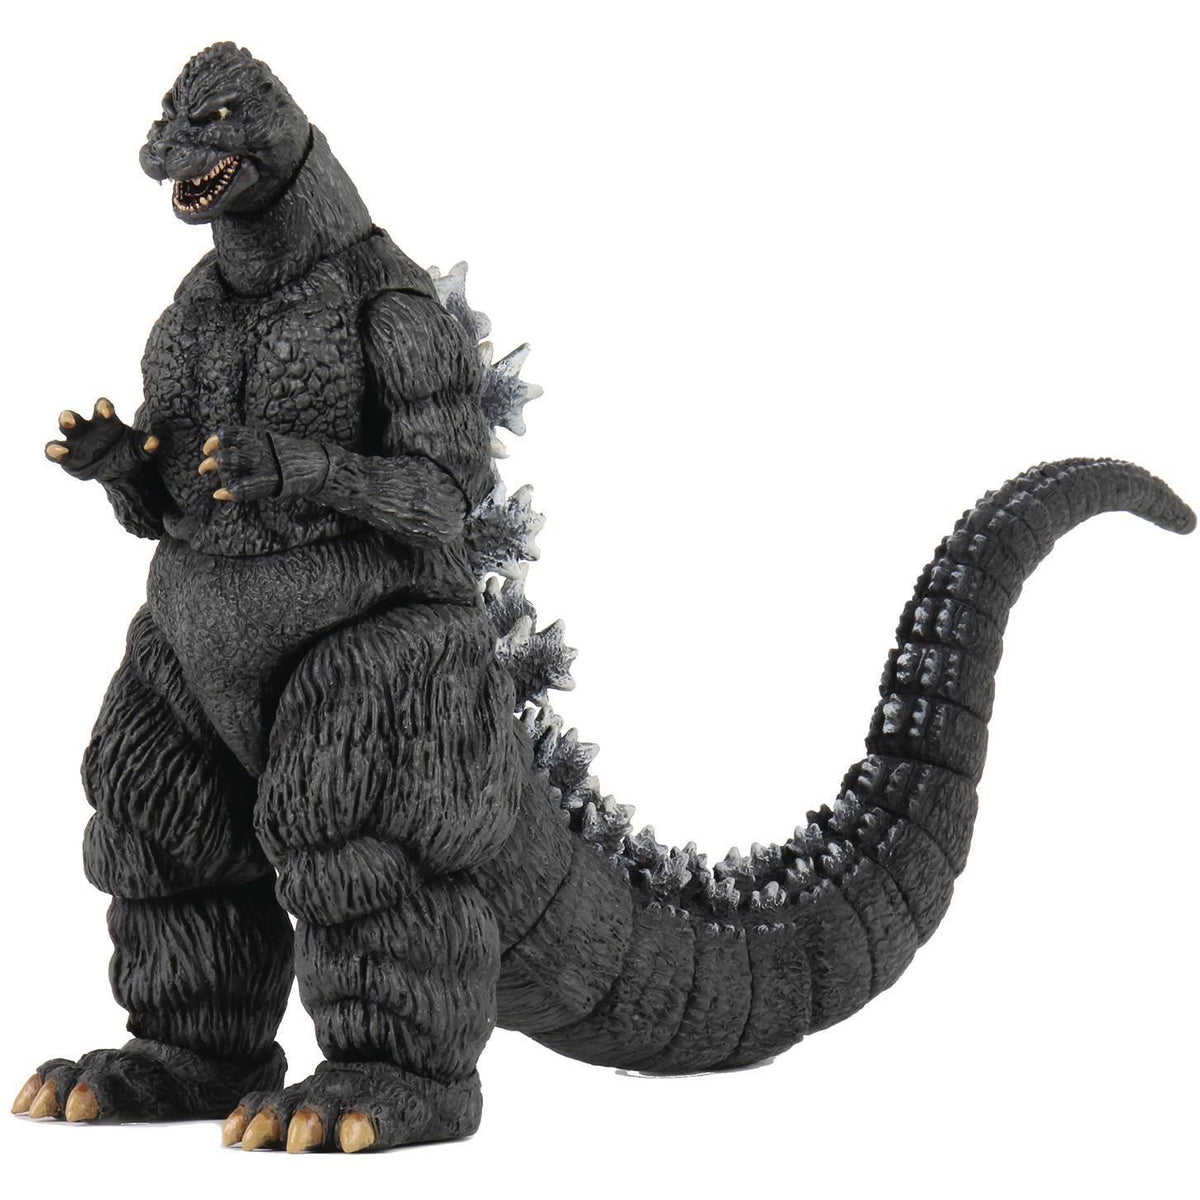 GODZILLA 1989 CLASSIC GODZILLA 12IN HEAD TO TAIL ACTION FIGURE